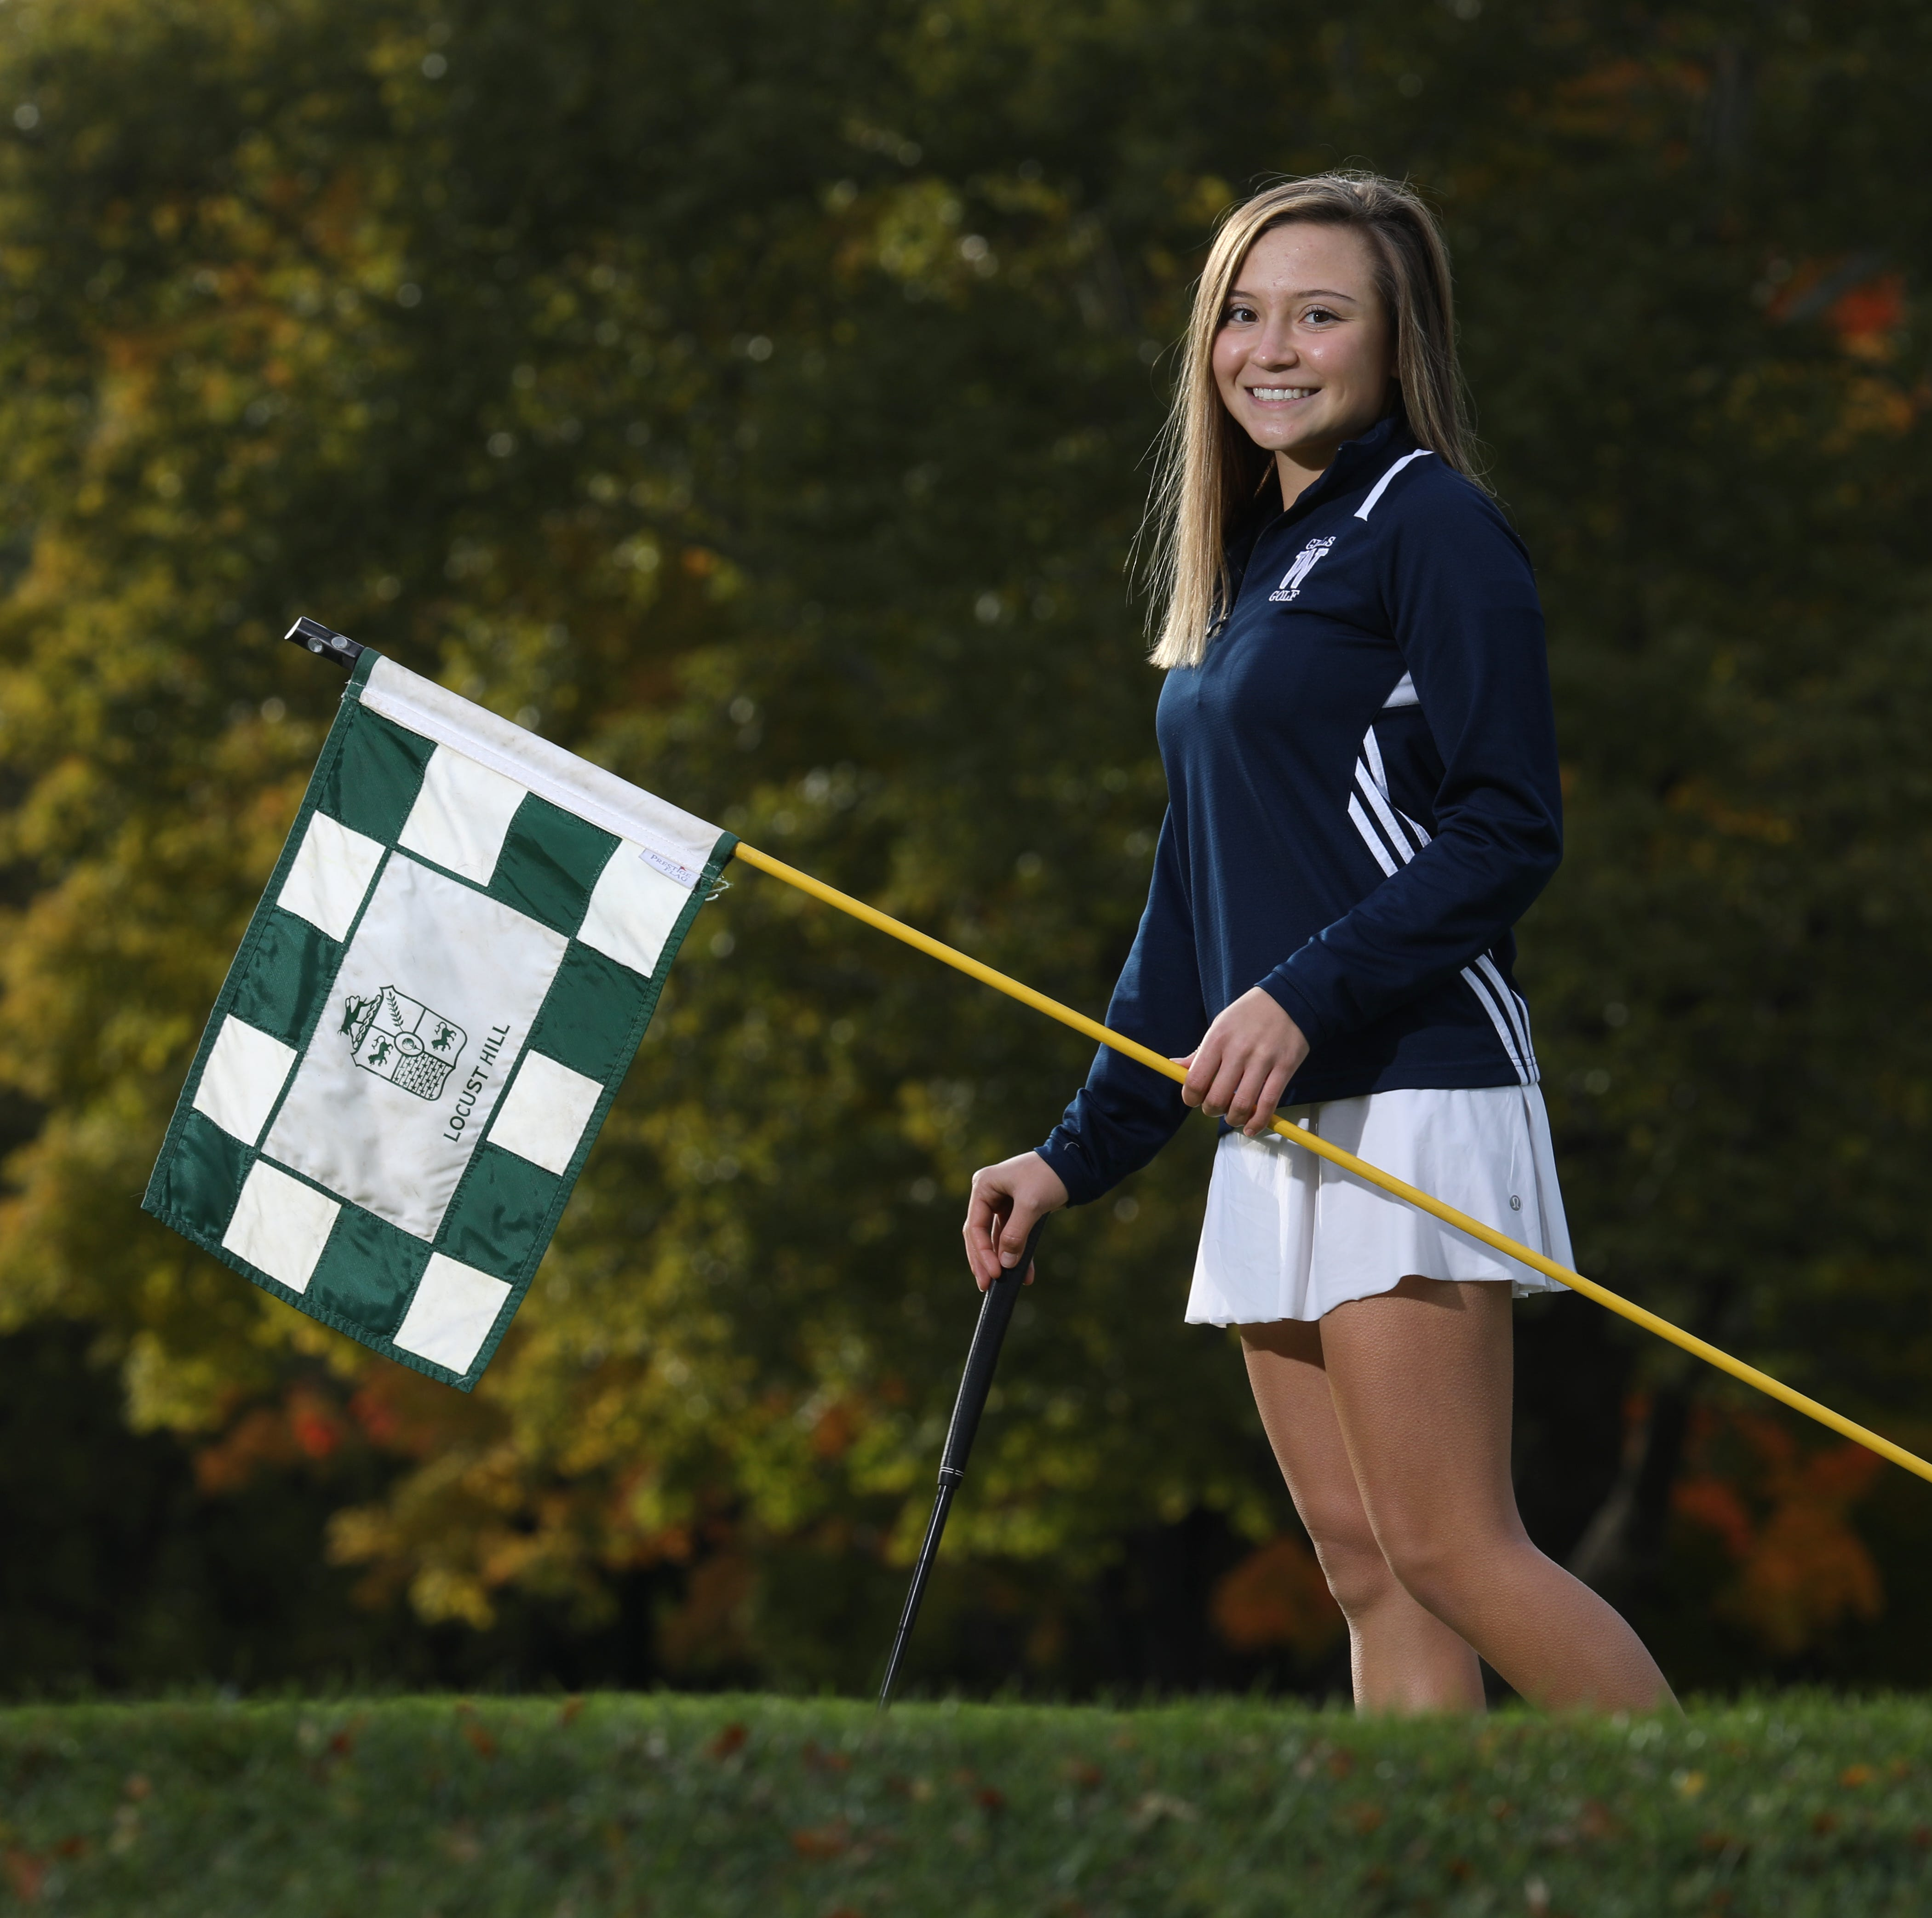 AGR Player of the Year award is par for the course for Webster Thomas' McDonnell